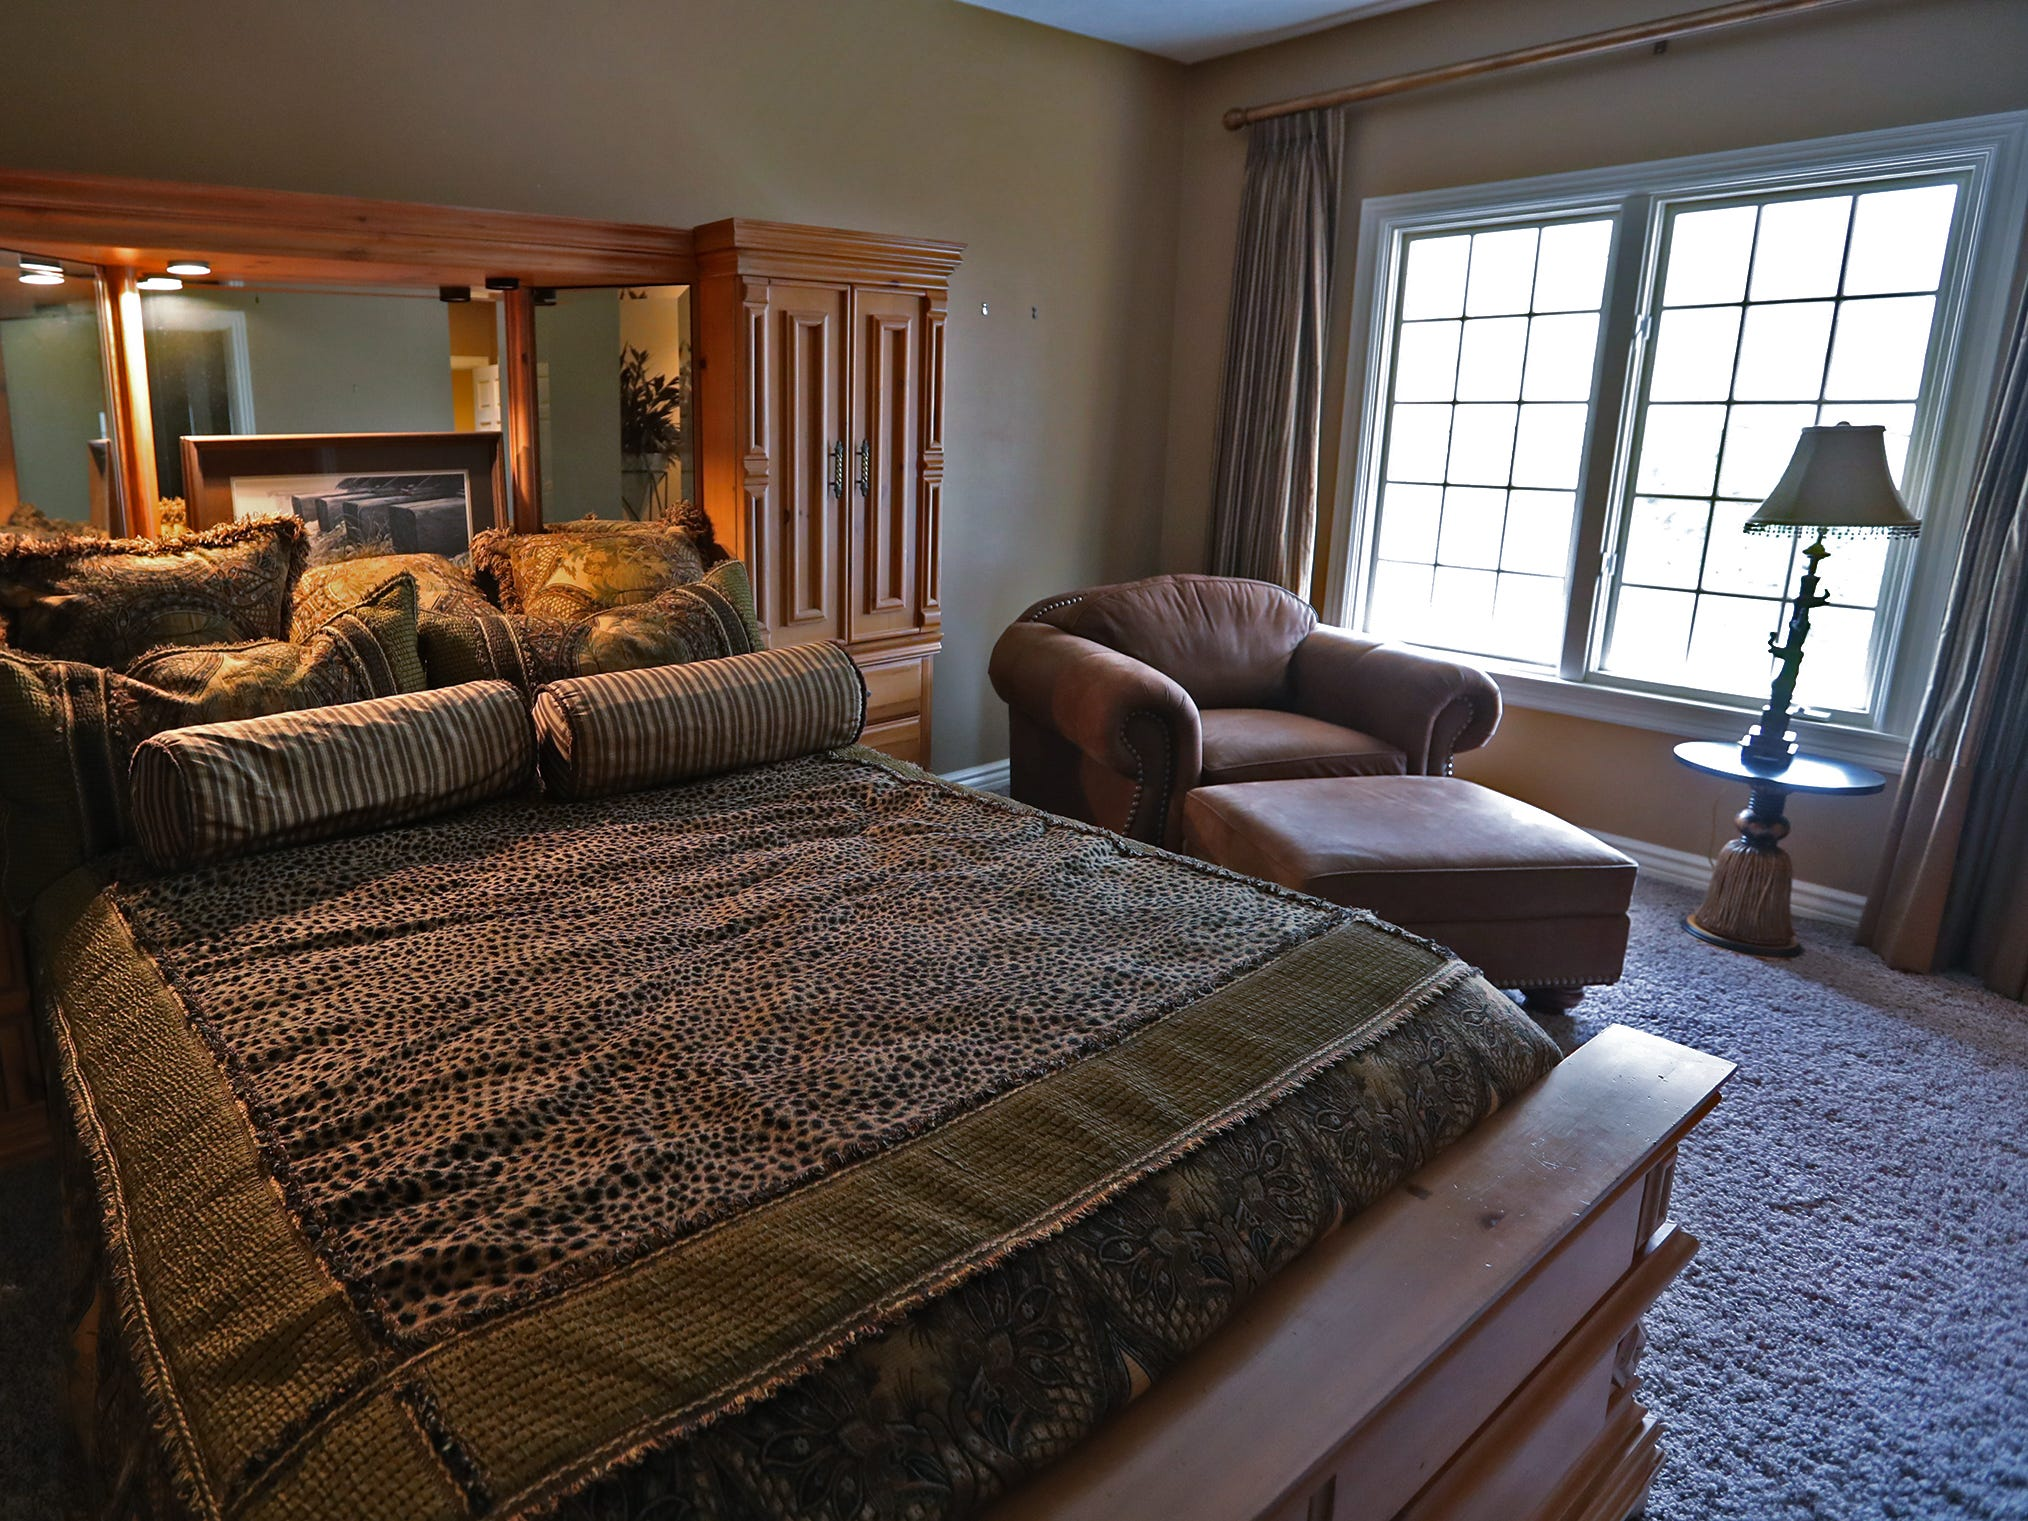 This is a bedroom in the home at 1270 Laurelwood Ct. in Carmel, Friday, Dec. 28, 2018.